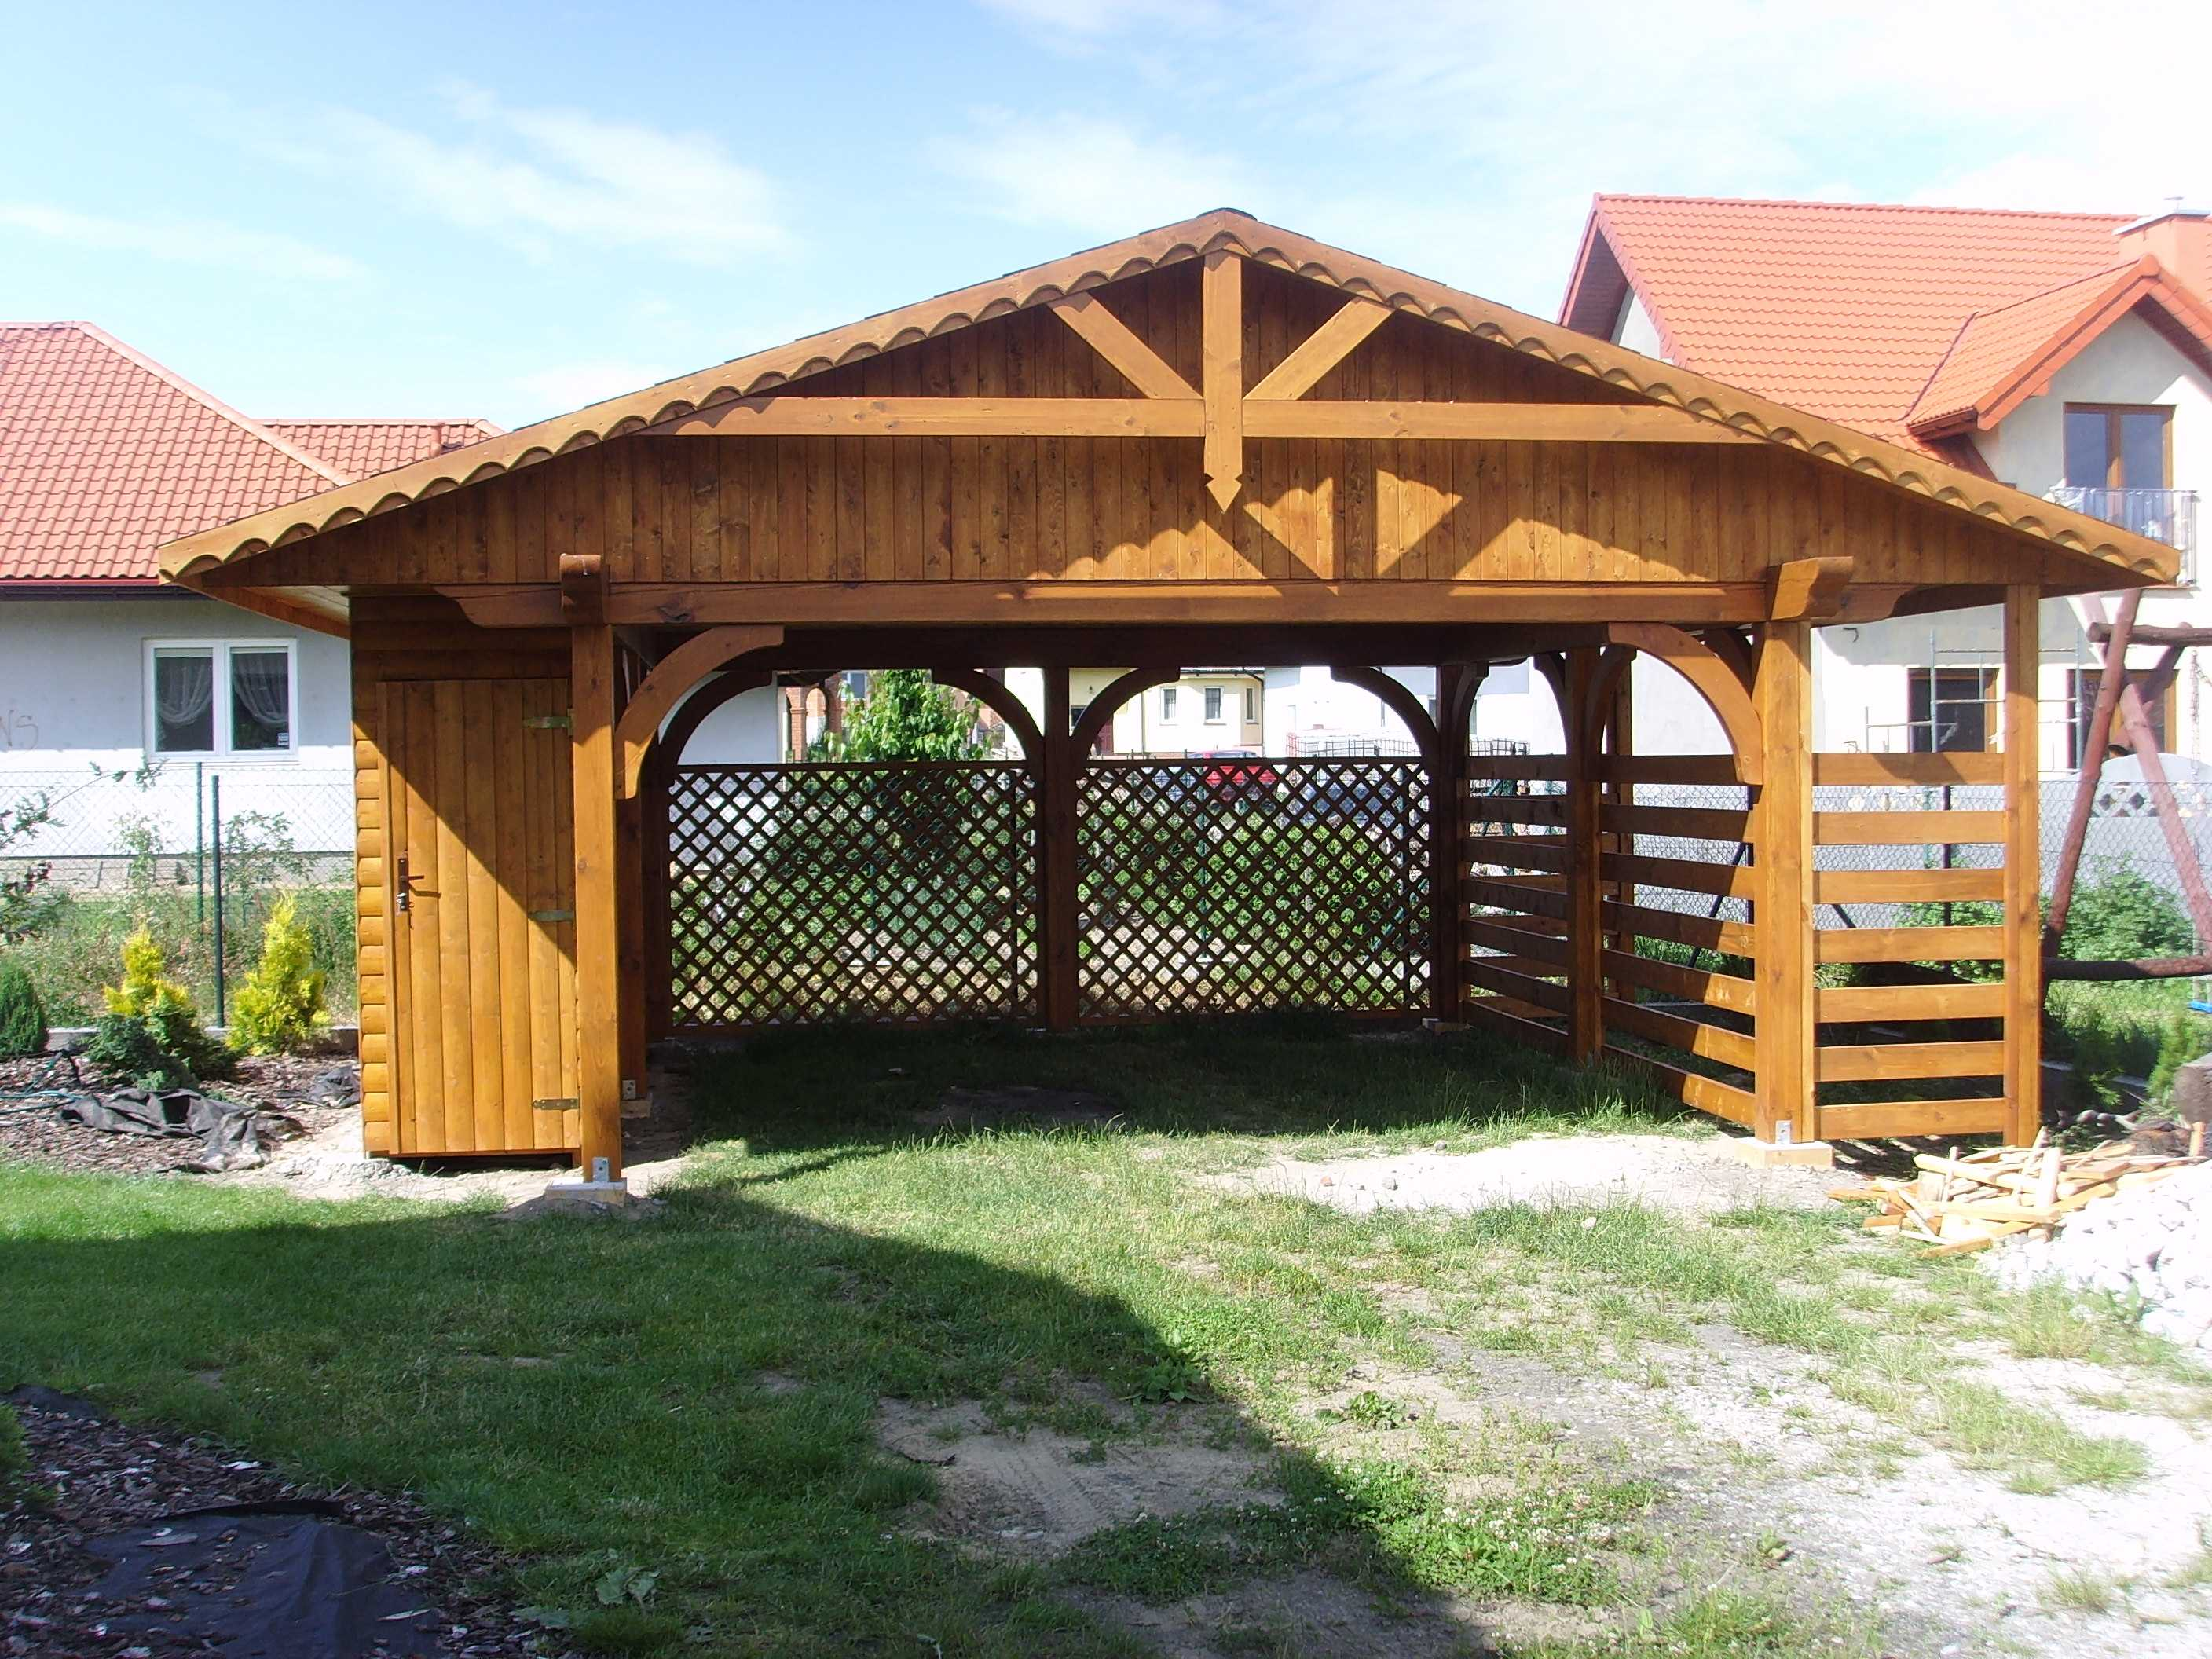 Carport With Shed